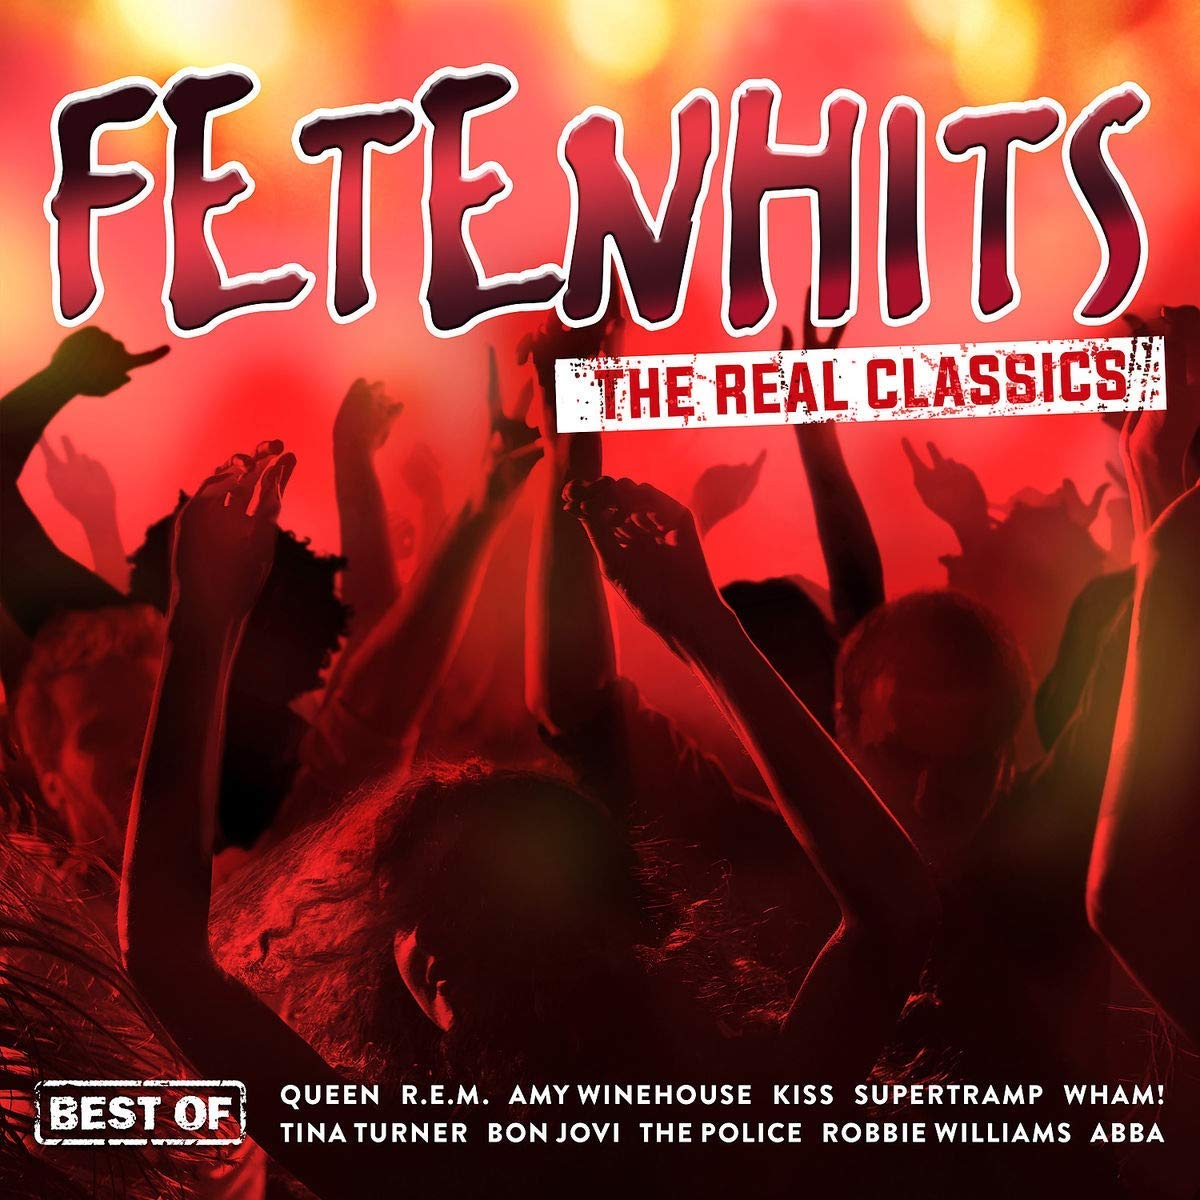 Fetenhits - the Real Classics (Best of) (2018)